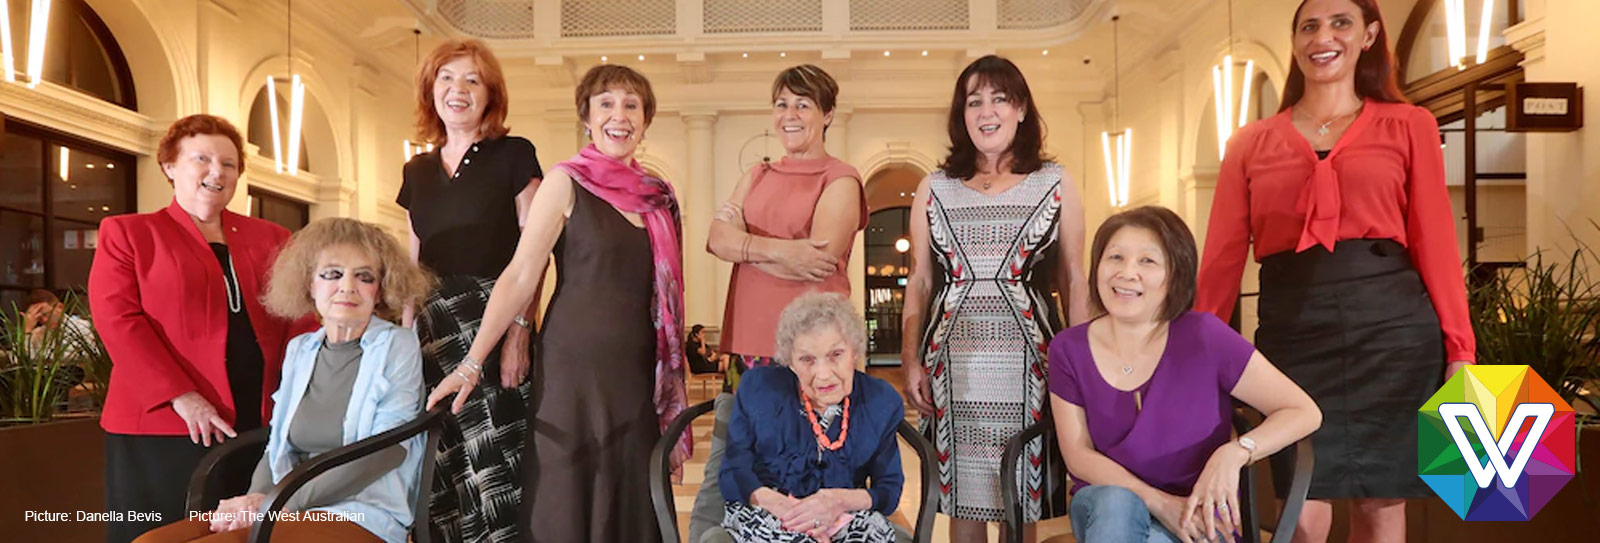 Dr Betsy Ann Buchanan is one of 15 women honoured at the 2017 WA Women's Hall of Fame